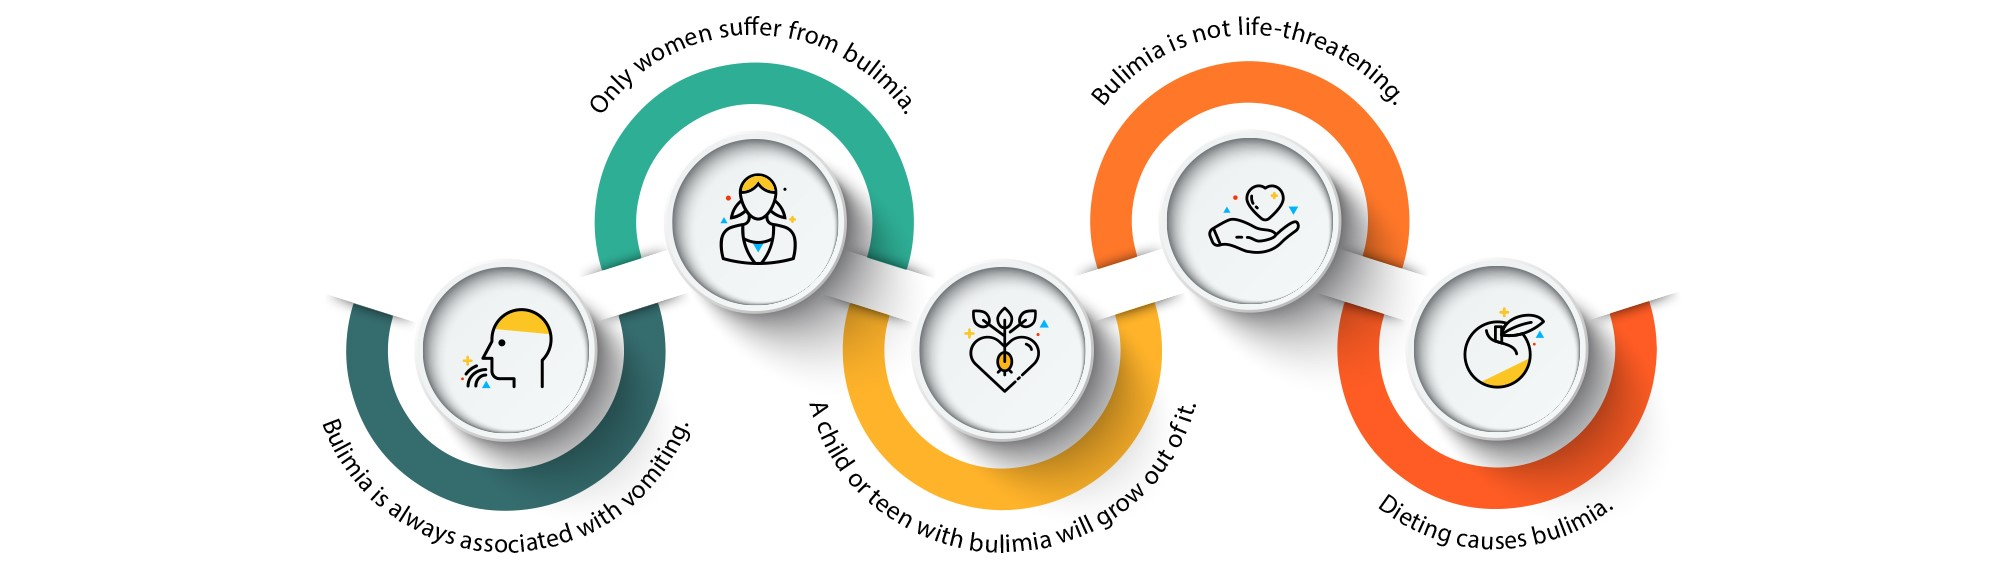 bulimia nervosa resource guide for family and friends